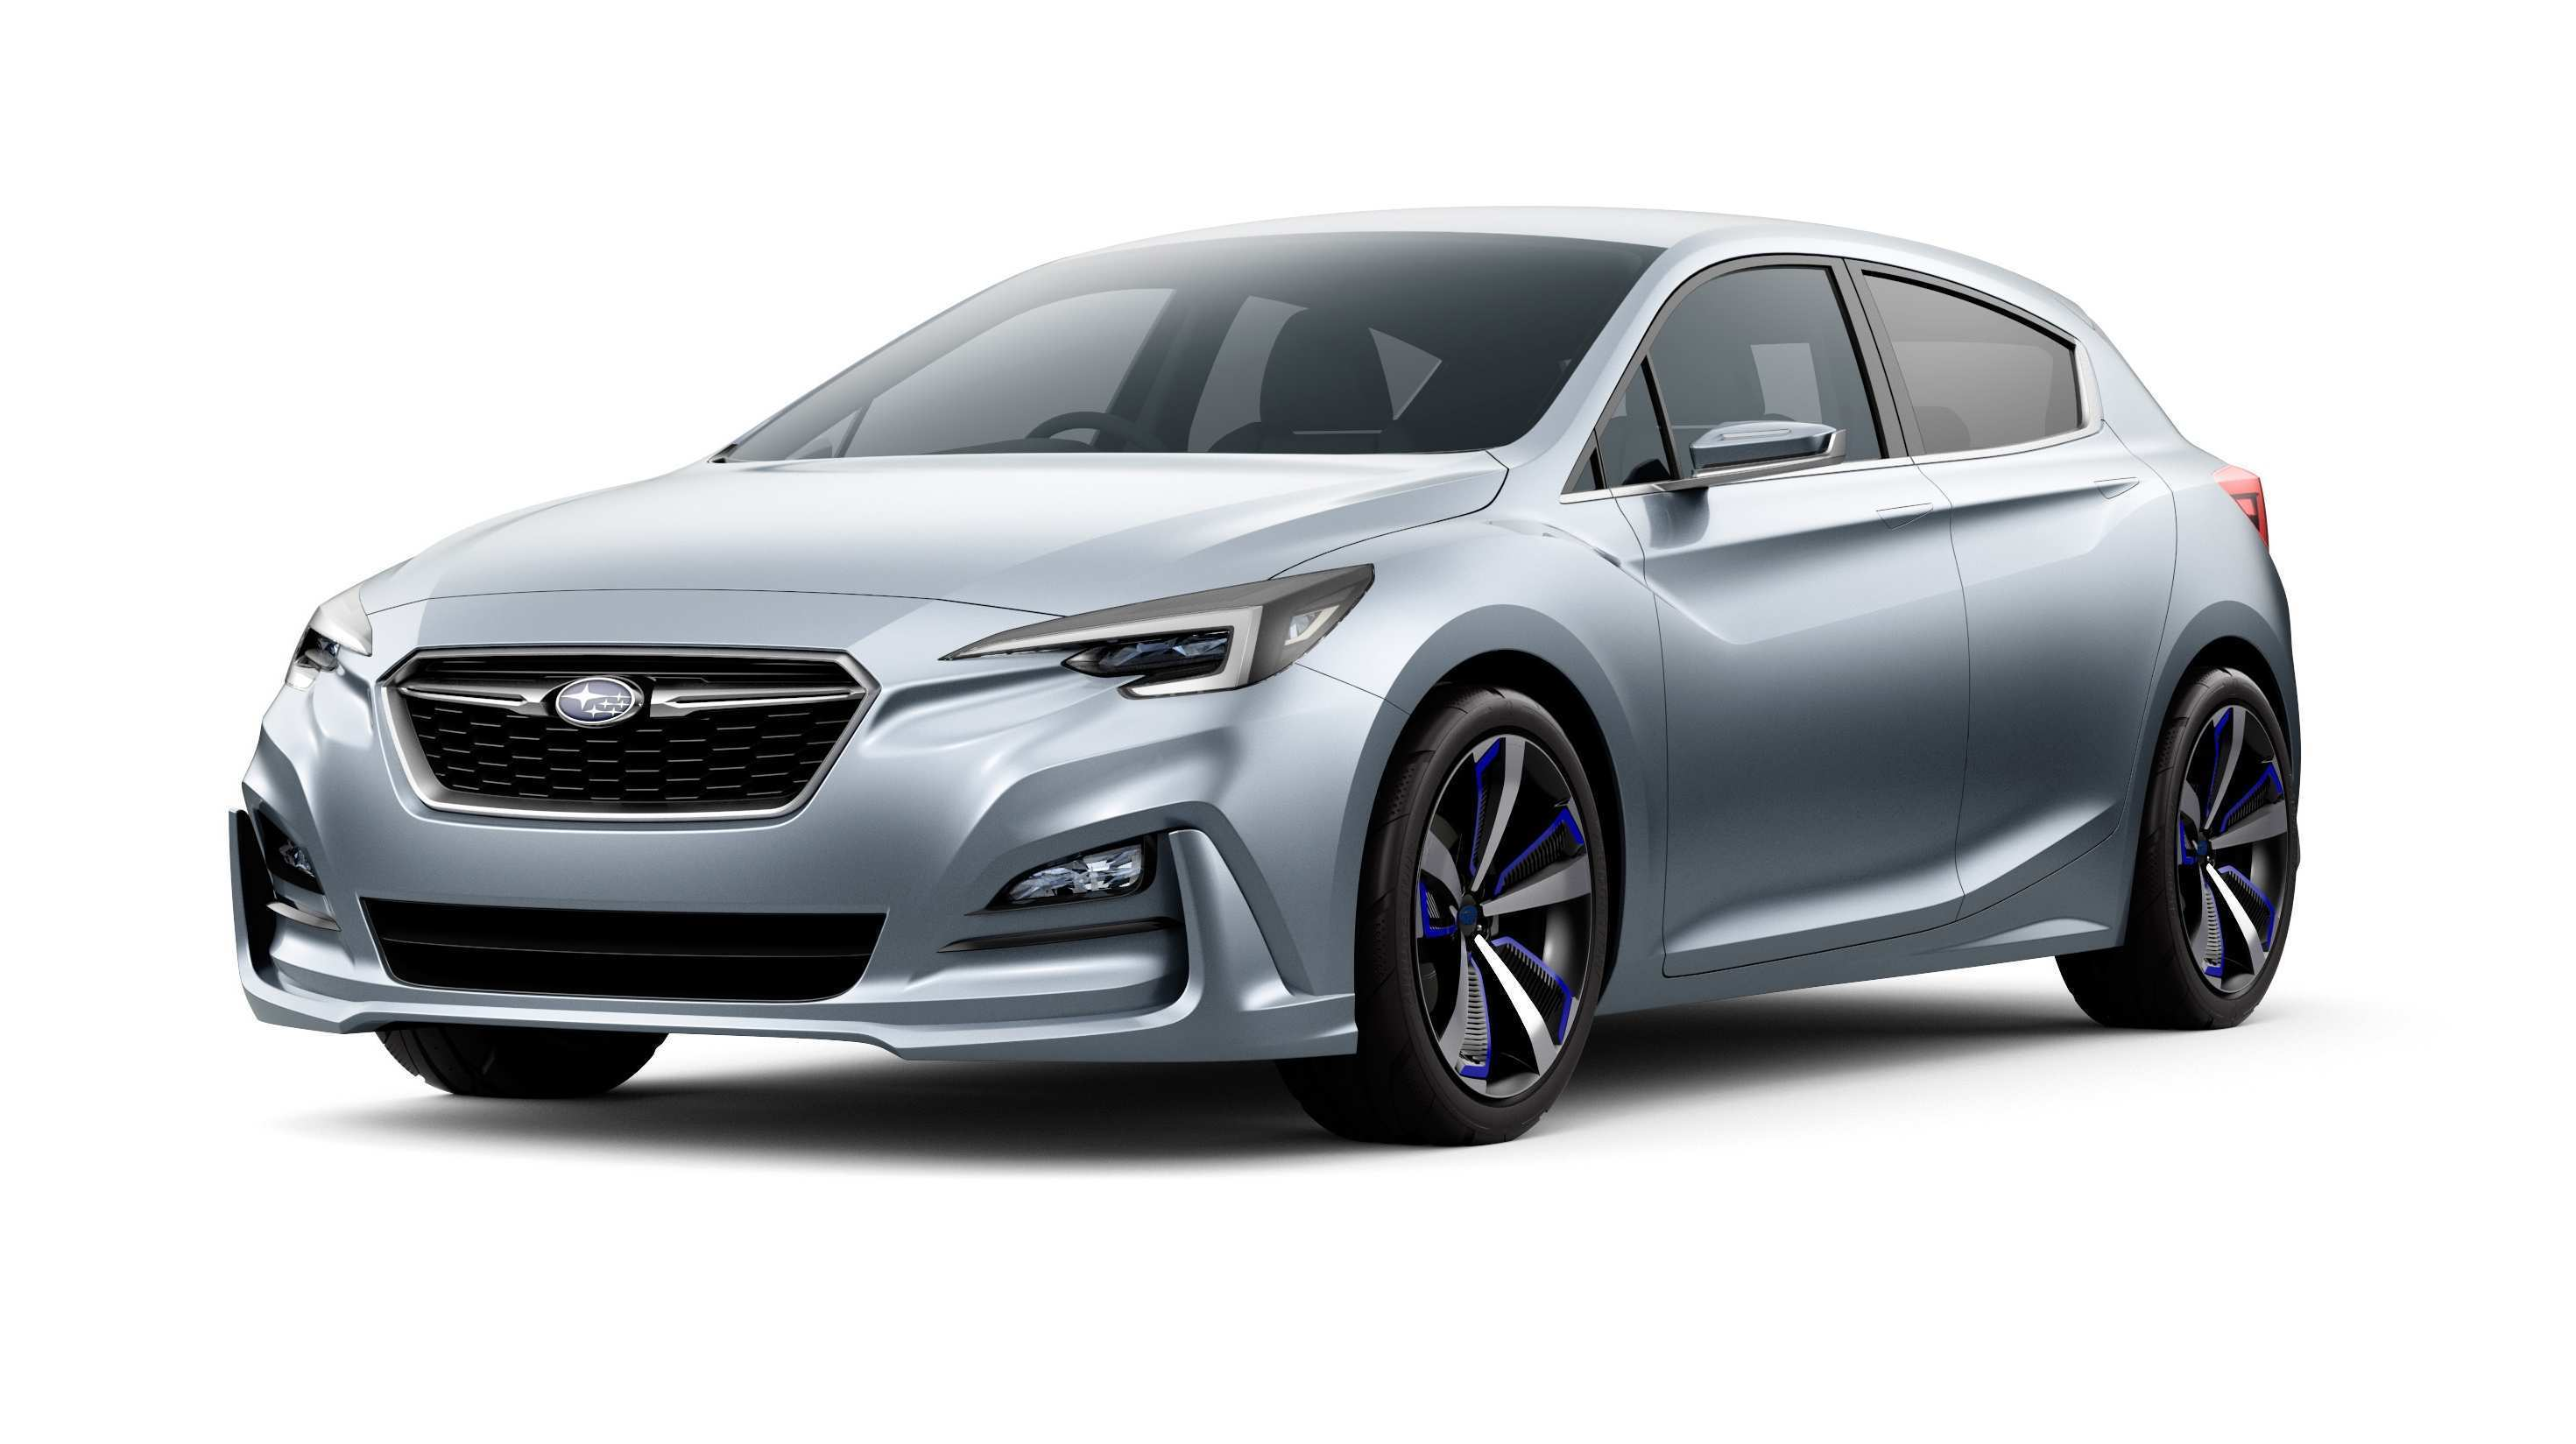 94 Best Subaru Hatchback 2020 Review